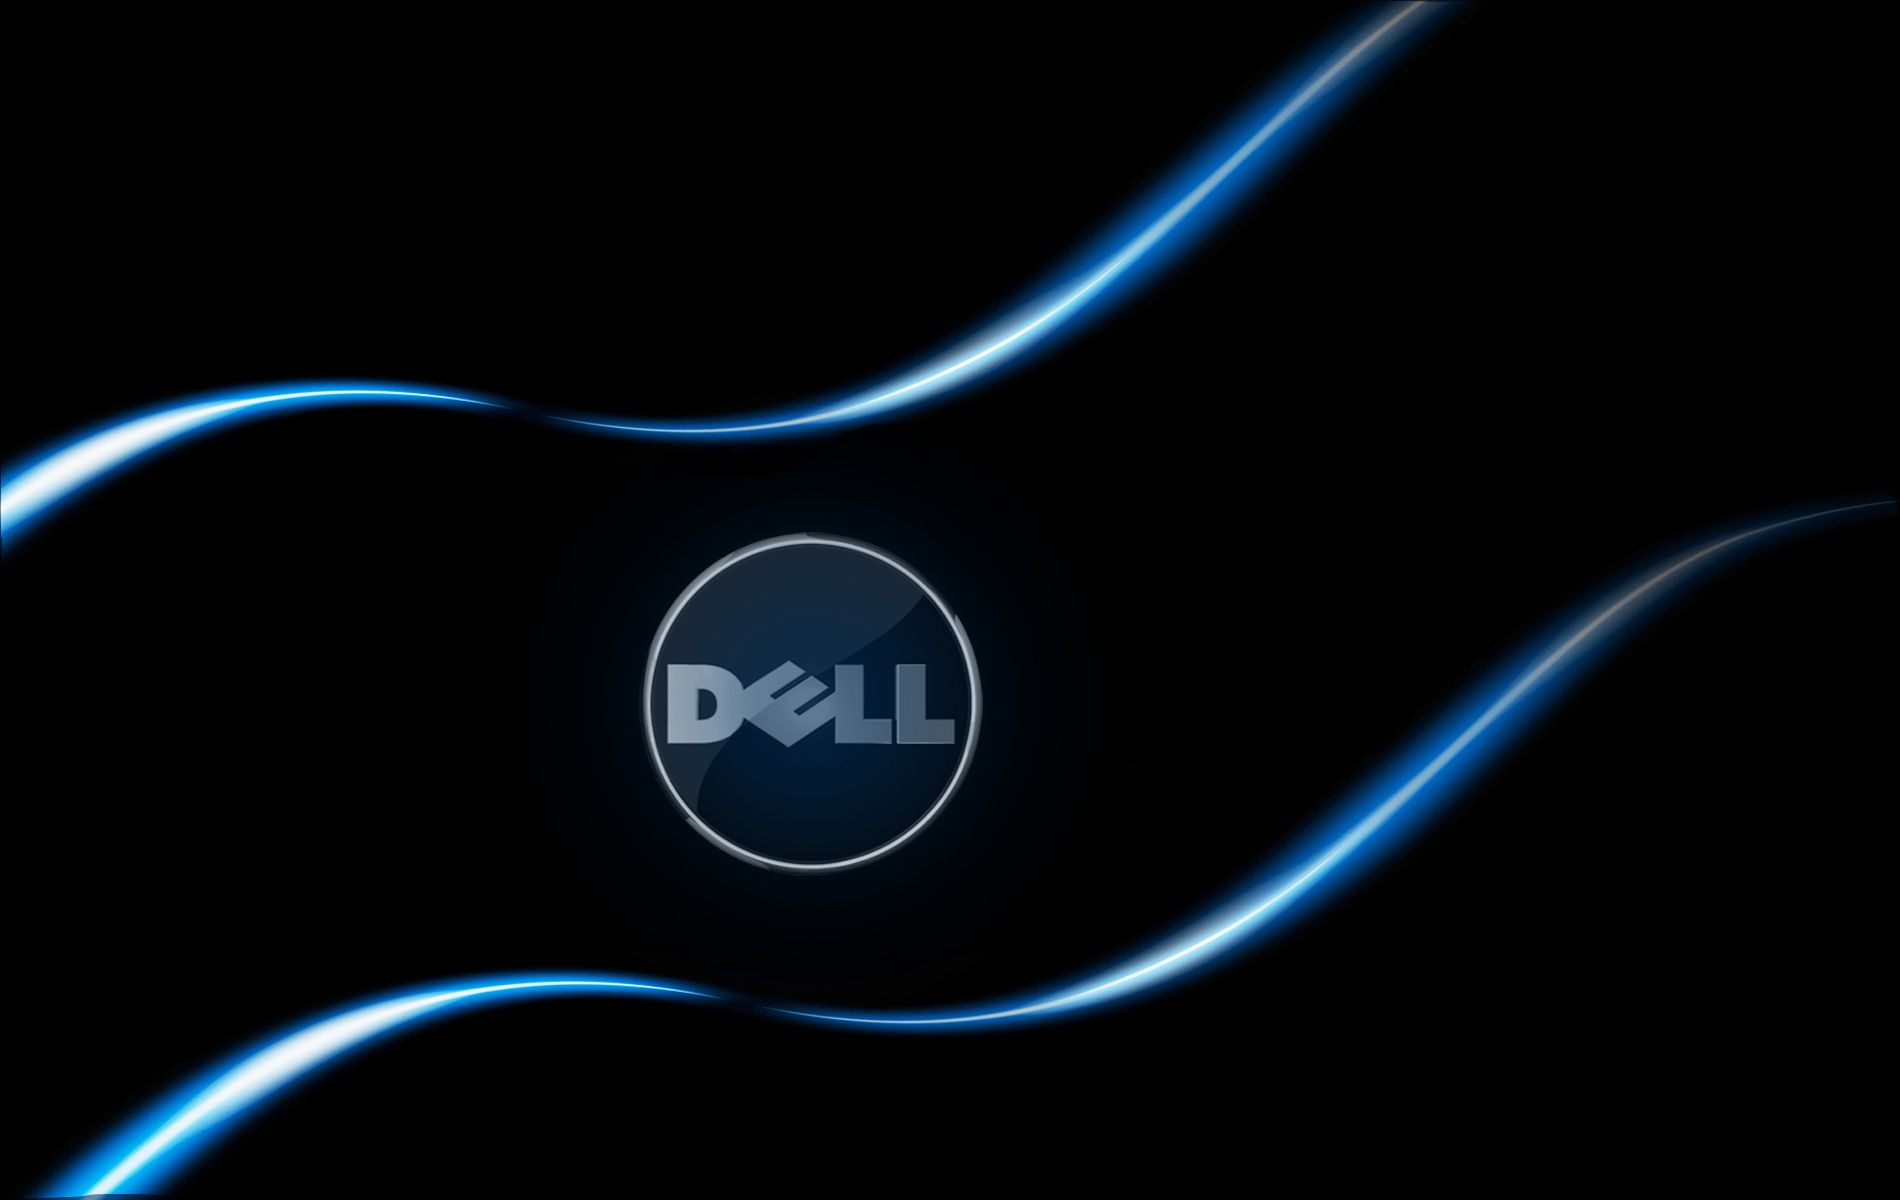 Dell Inspiron Wallpapers   Top Dell Inspiron Backgrounds 1900x1200